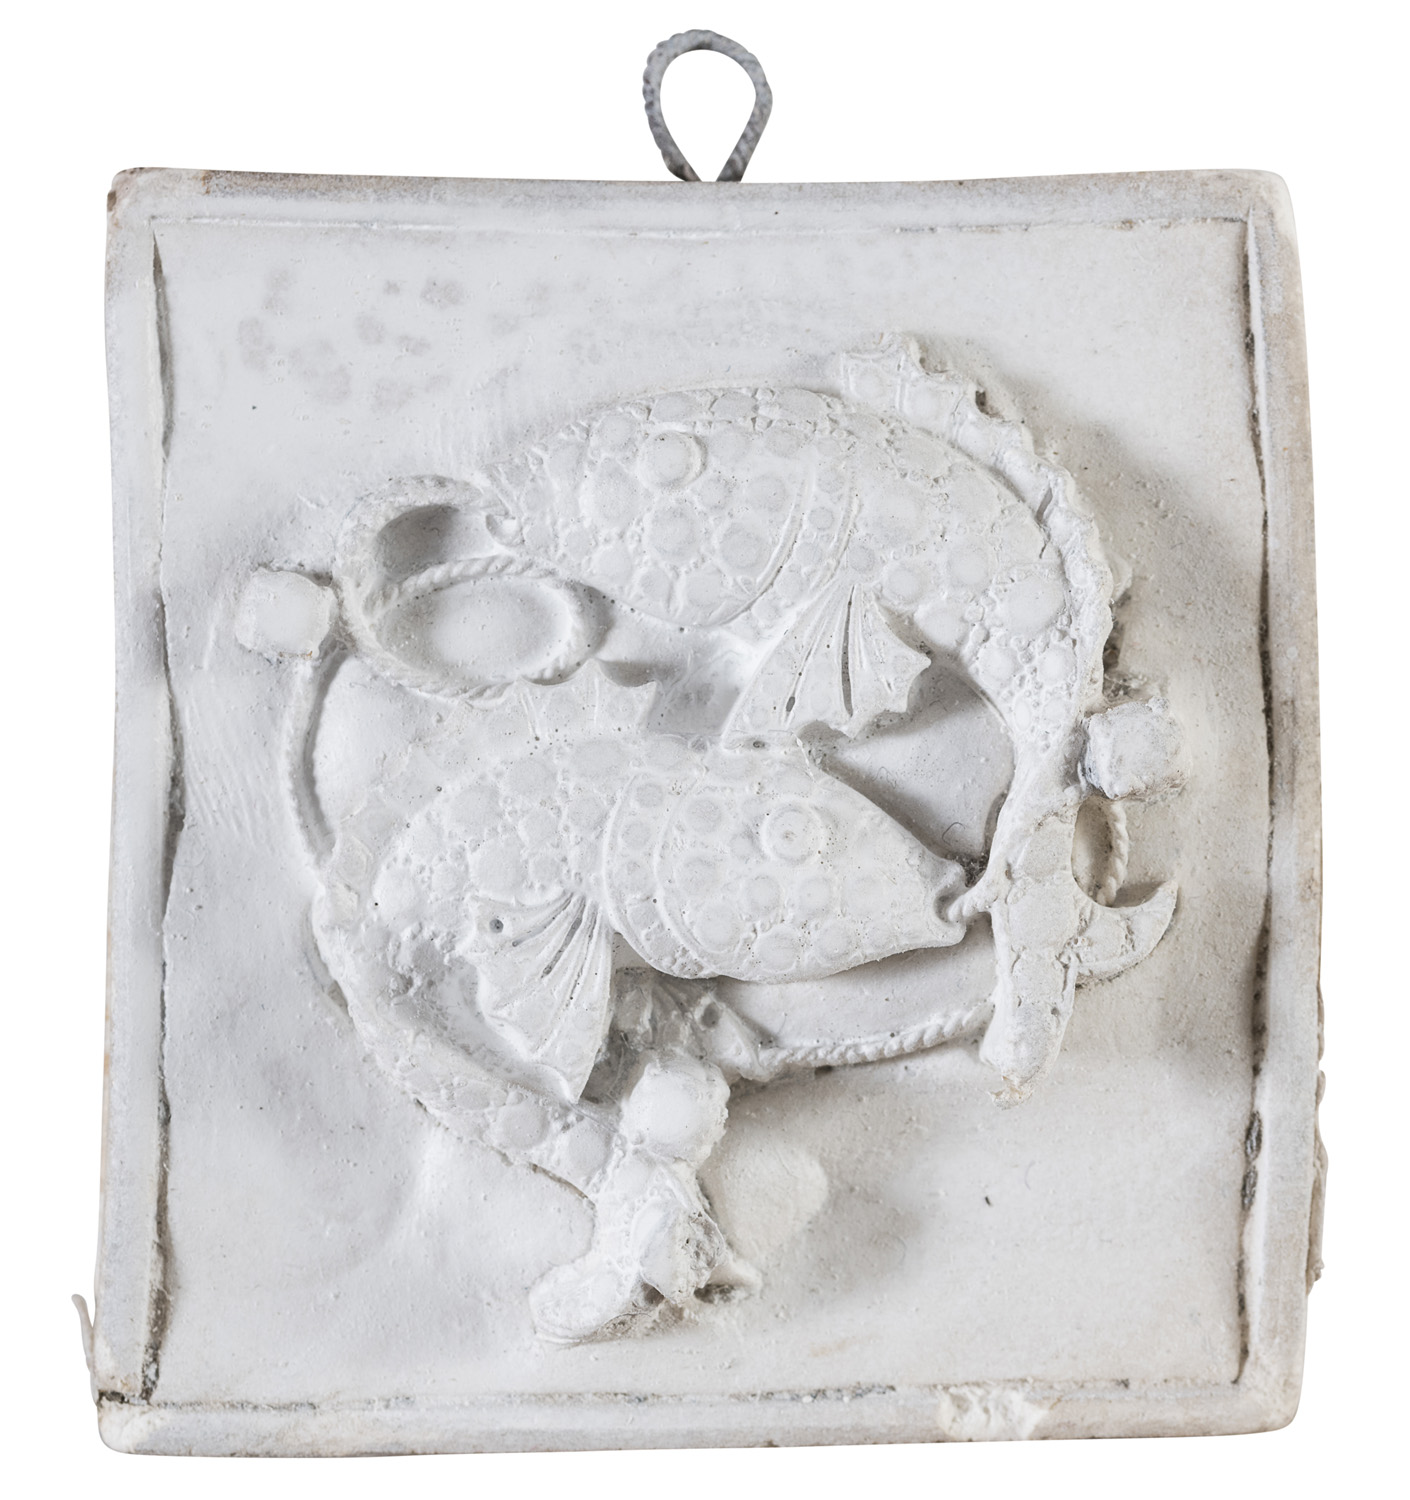 NINE MIXED MEDIA AND A MOLD BY CESARE ZANCOLLA 1960's - Image 2 of 2